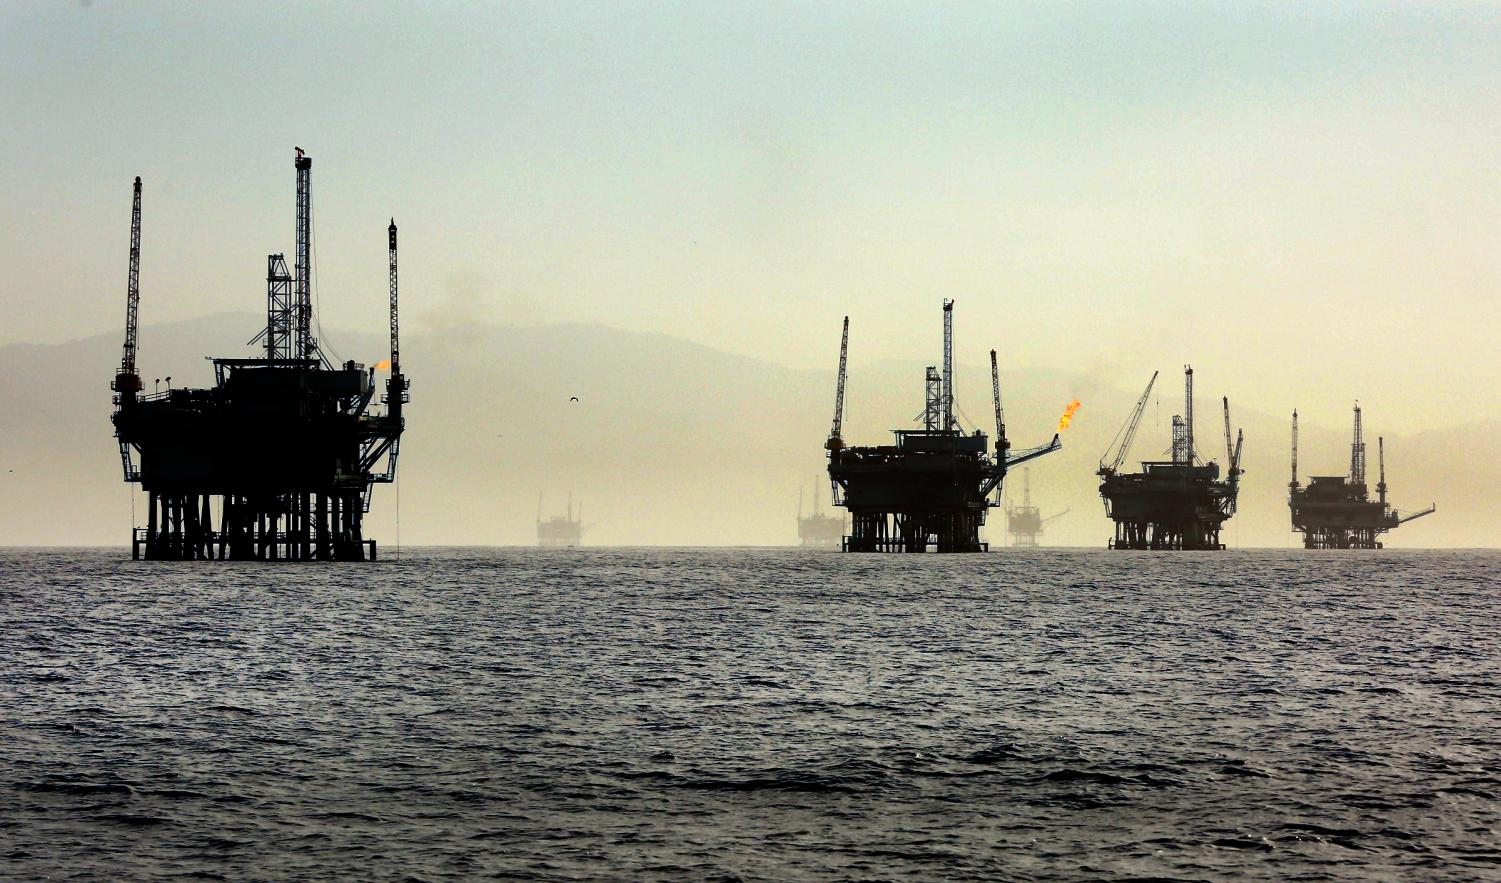 A line of off-shore oil rigs in the Santa Barbara Channel near the Federal Ecological Preserve en route to the Channel Islands National Marine Sanctuary in March 2015.